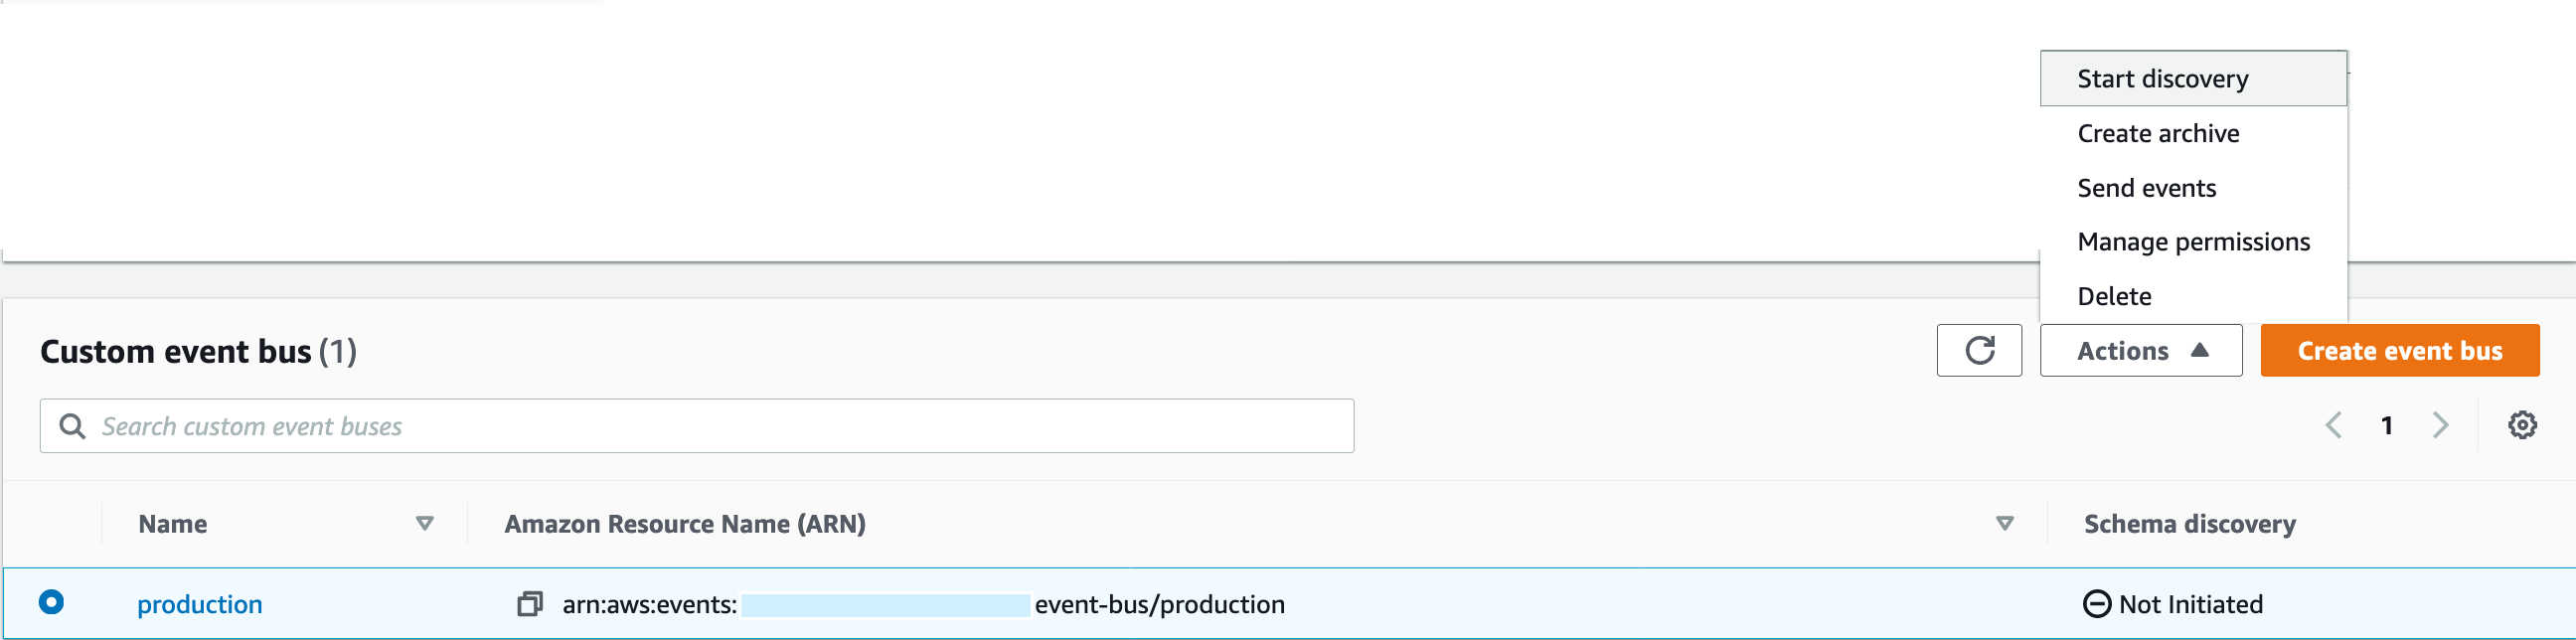 Custom event bus displays the production event bus and its ARN. Under Schema discovery, Not initiated is displayed.